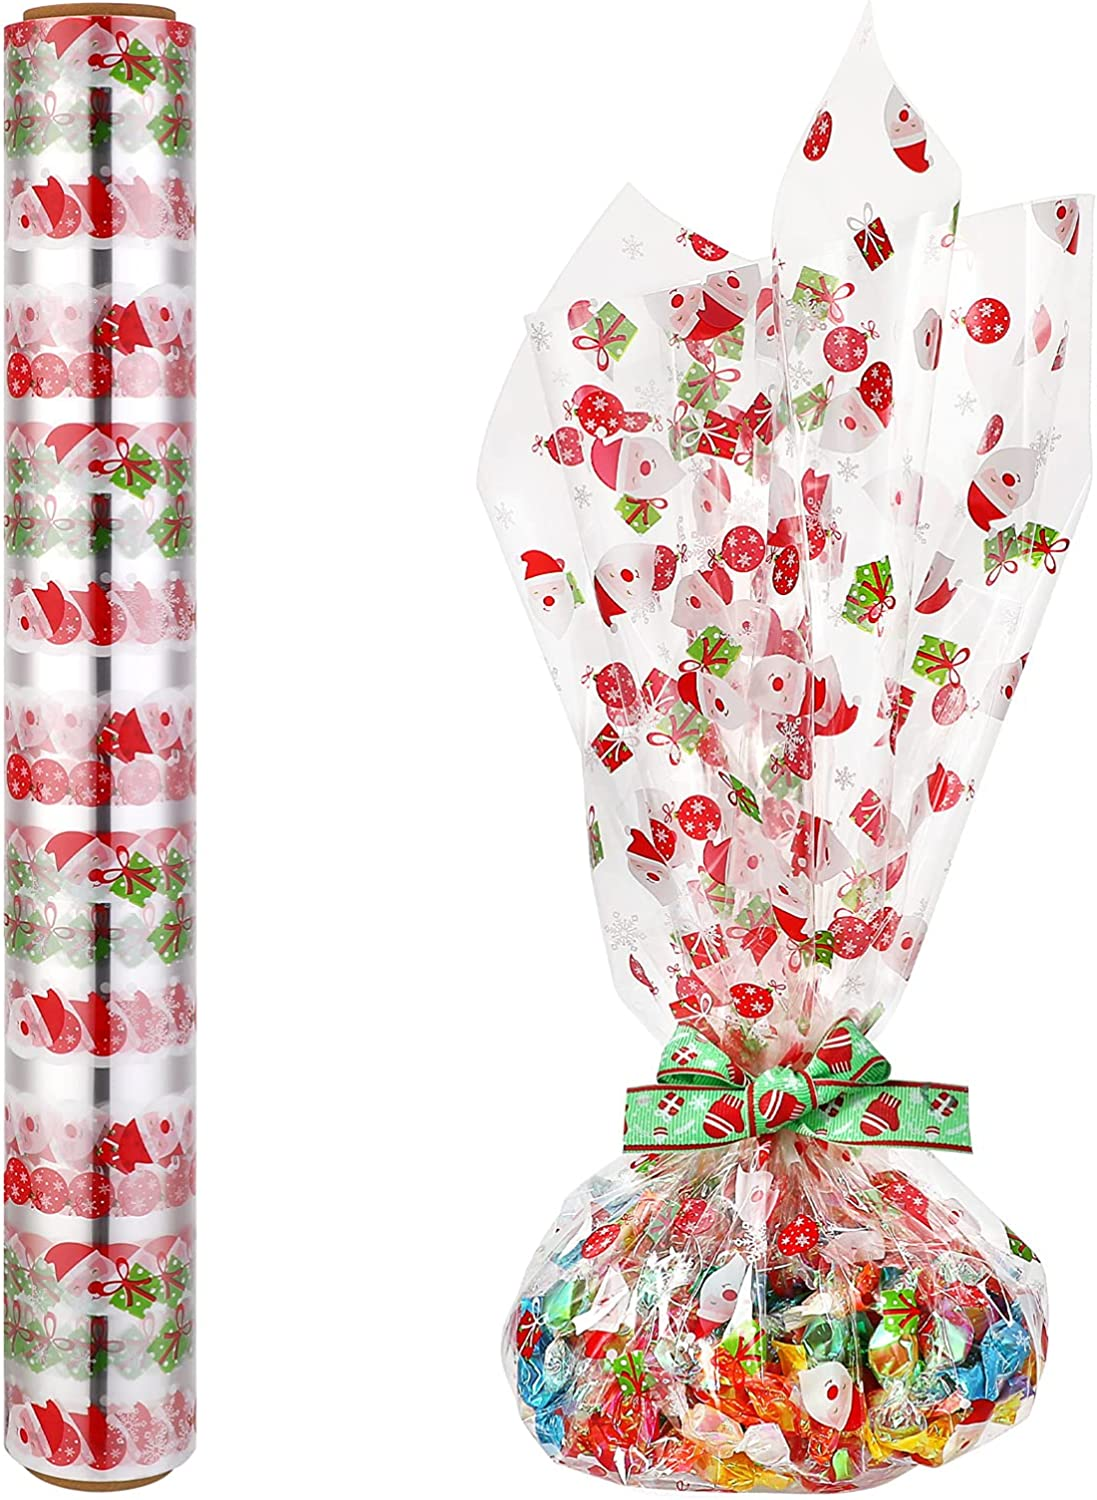 TOYANDONA Clear Cellophane Wrap Roll Mil 2. 5 Florist Sales Clearance SALE! Limited time! for sale